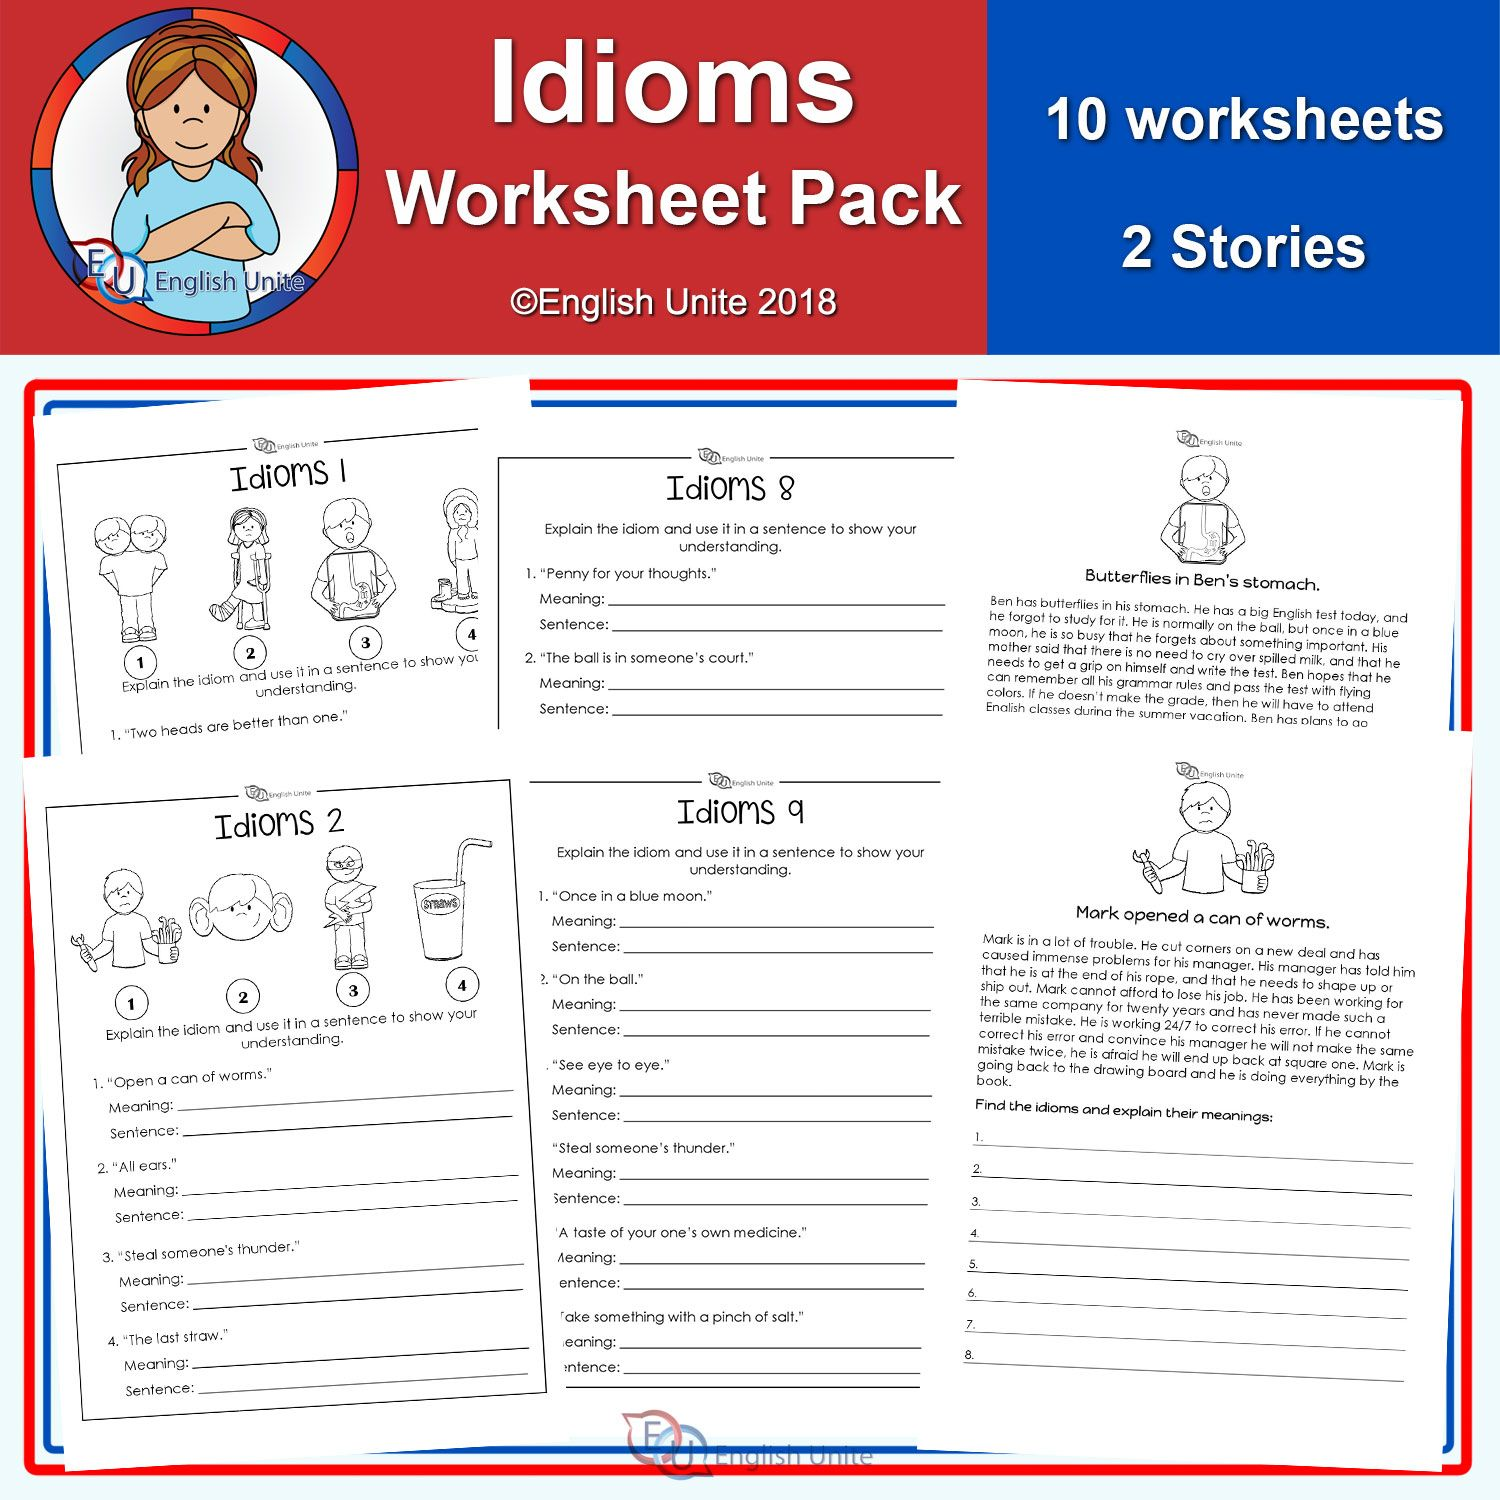 Idiom worksheets - 12 pack - English Unite   Parts of speech worksheets [ 1500 x 1500 Pixel ]